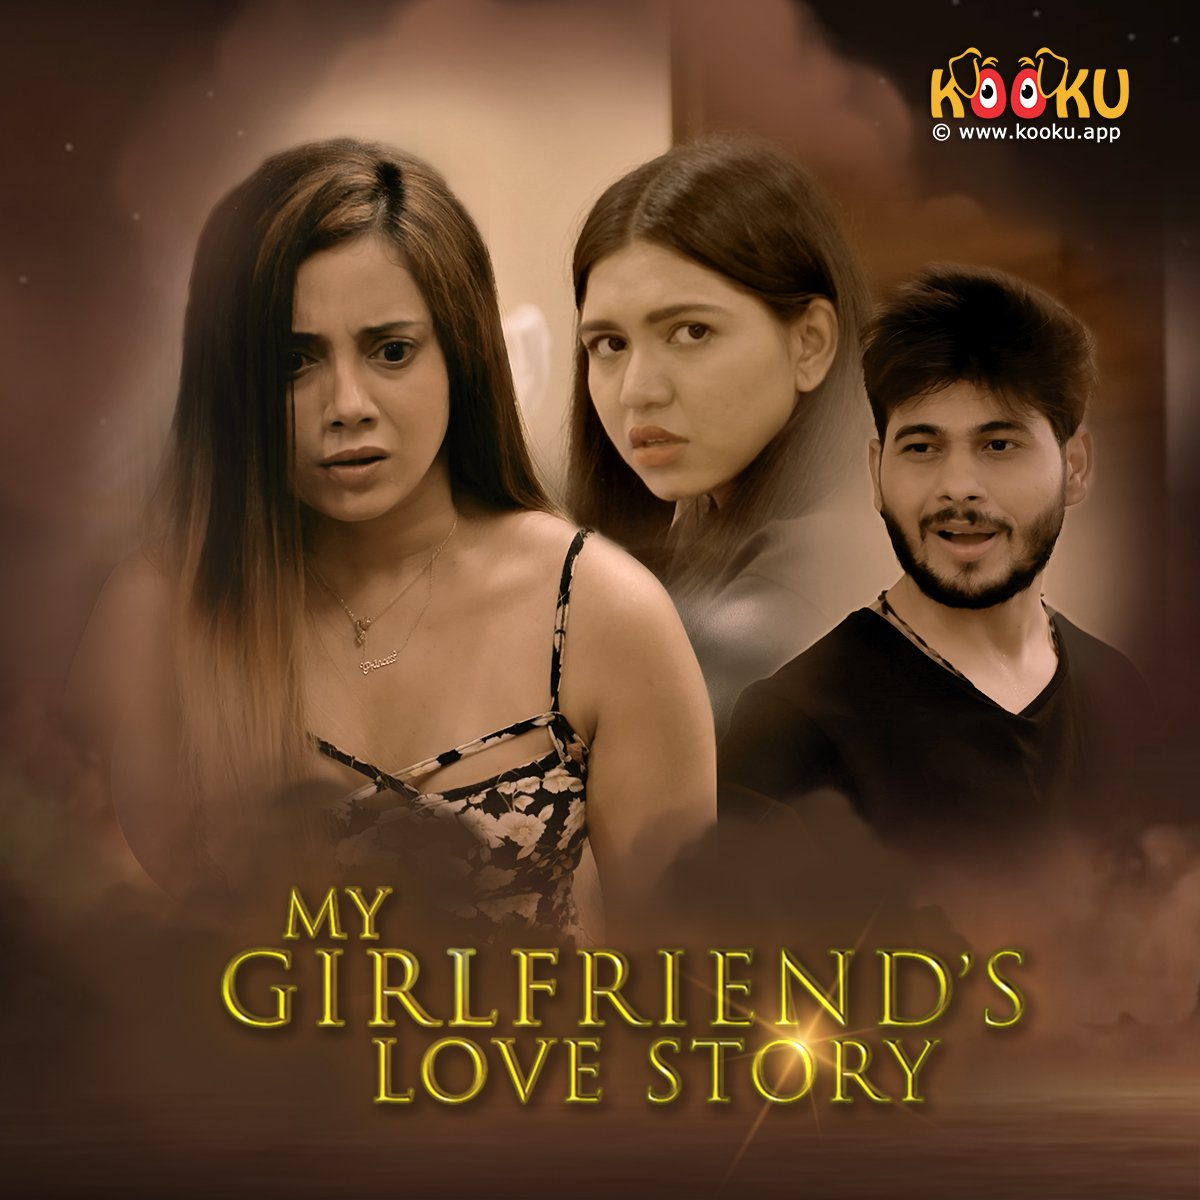 My Girlfriends Love Story 2020 S01 Kooku Hindi Complete Web Series 720p HDRip 300MB Download